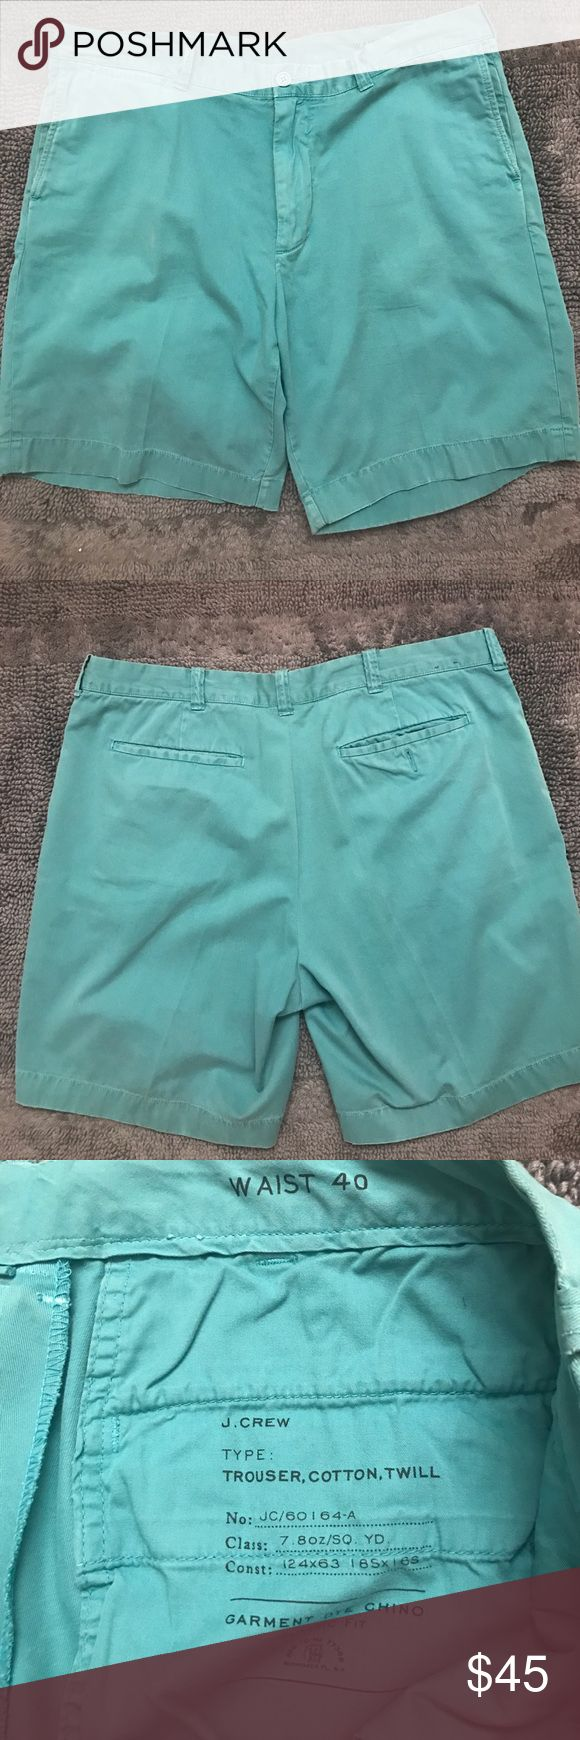 J Crew Light Turquoise Shorts Lightly worn, great condition! Size 40 J. Crew Shorts Flat Front